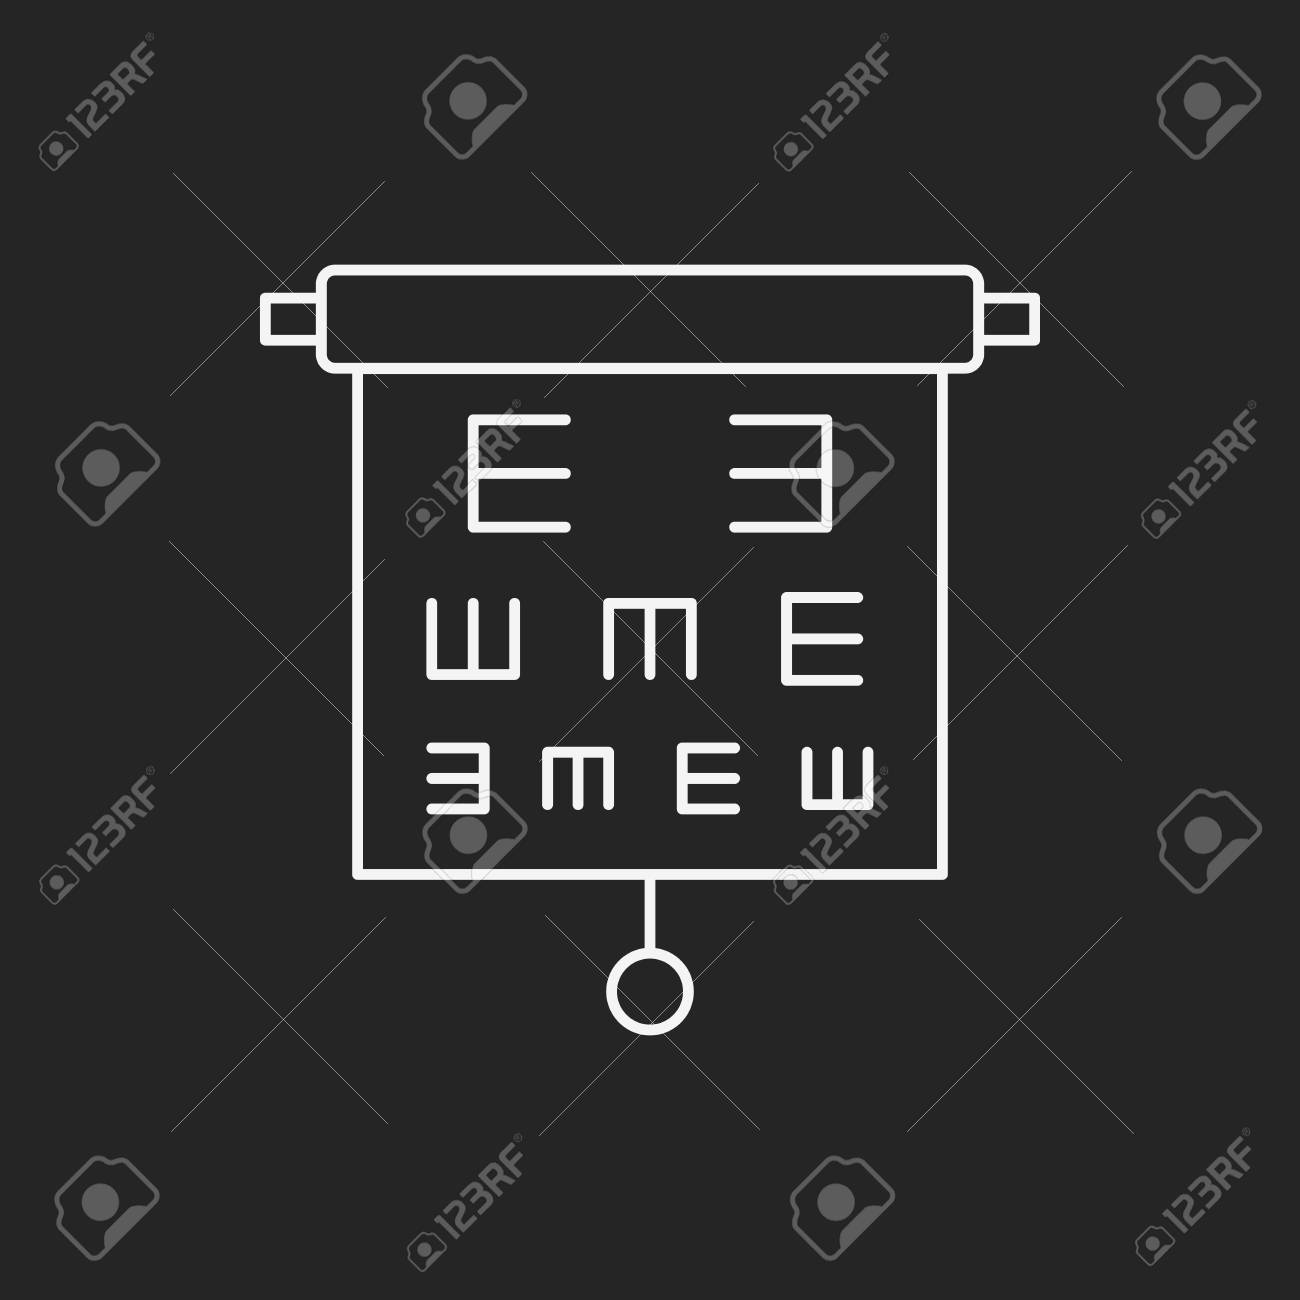 Eye Chart Line Icon Royalty Free Cliparts Vectors And Stock